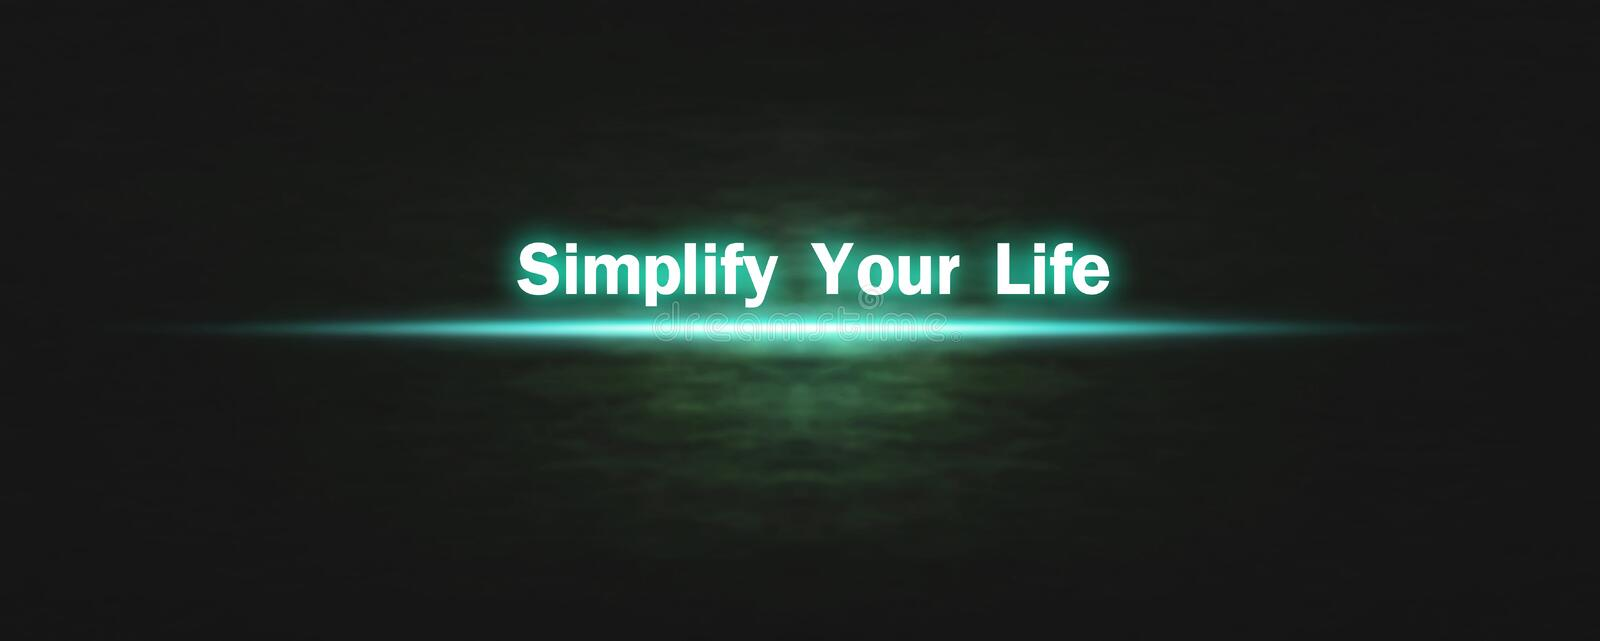 Simplify Your Life. Business concept stock photo